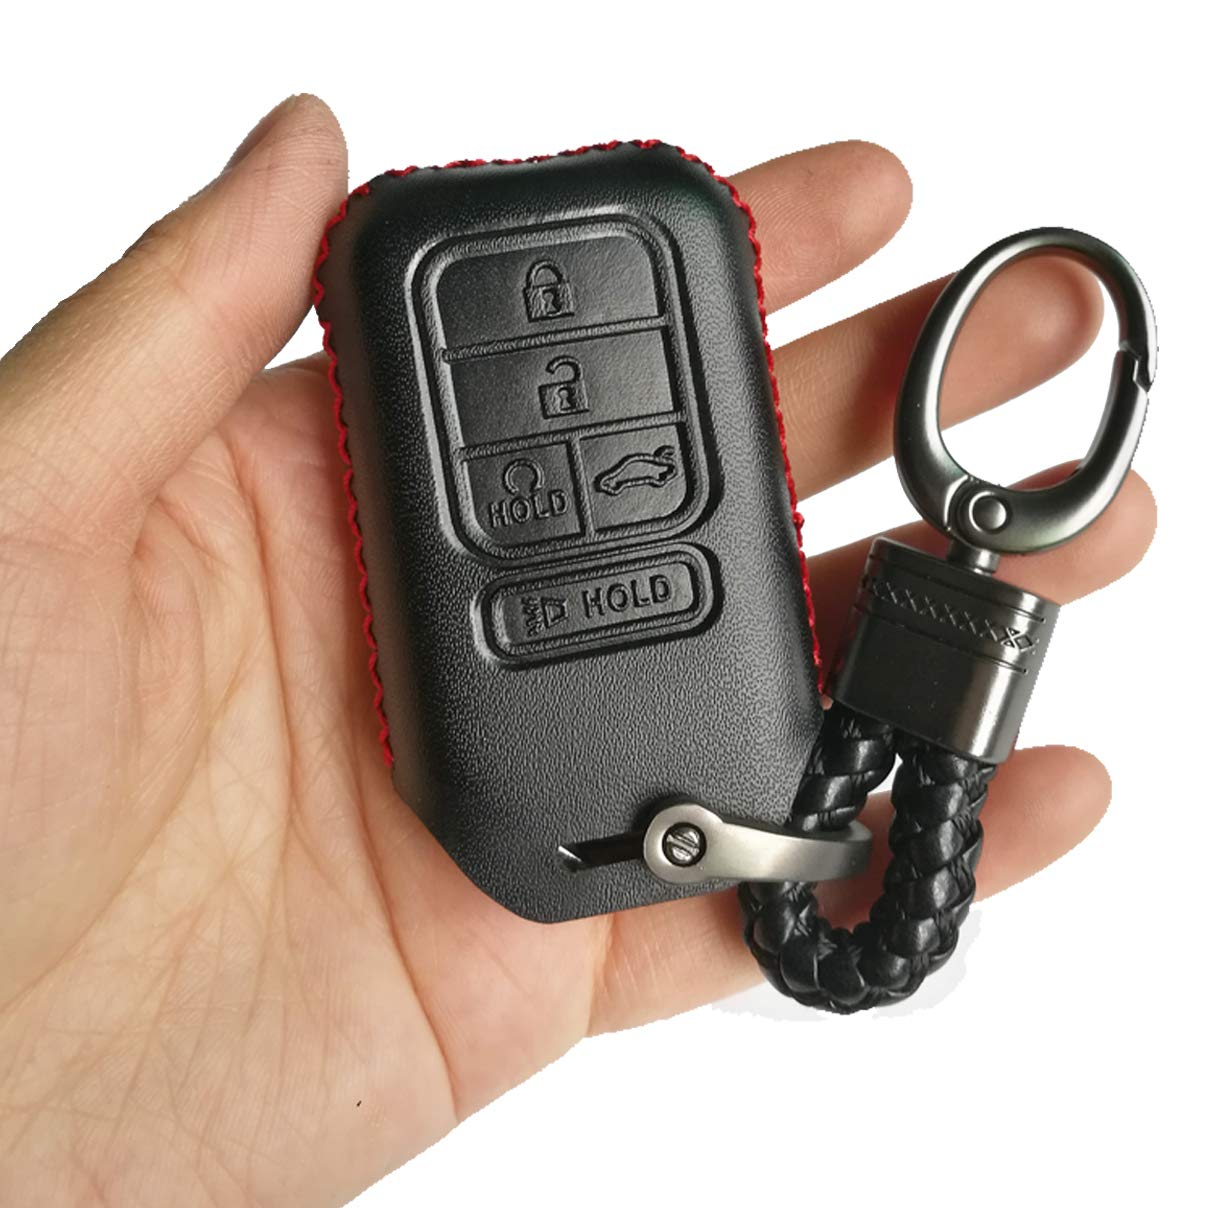 Red Hand Sewing Leather Key Cover Case Fob Bag Holder Fit For 2019 2018 2017 2016 2015 Honda Accord Civic Insight CR-V CRV Pilot EX EX-L Touring Premium A2C81642600 Alegender